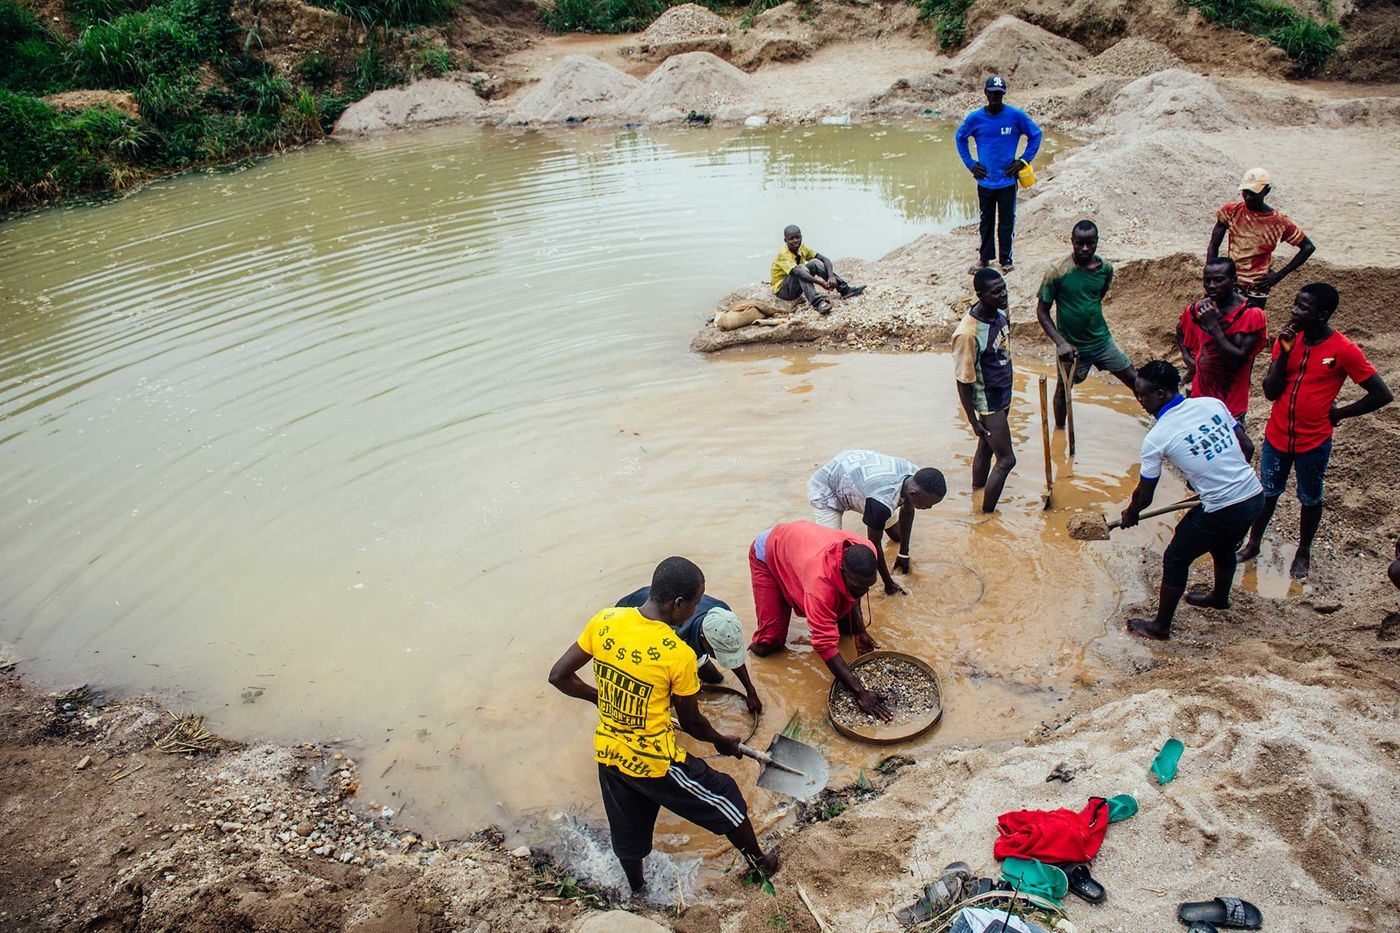 A crew in Kono District sifts through mud and rocks in search of diamonds. The diggers are paid $2.50 a day